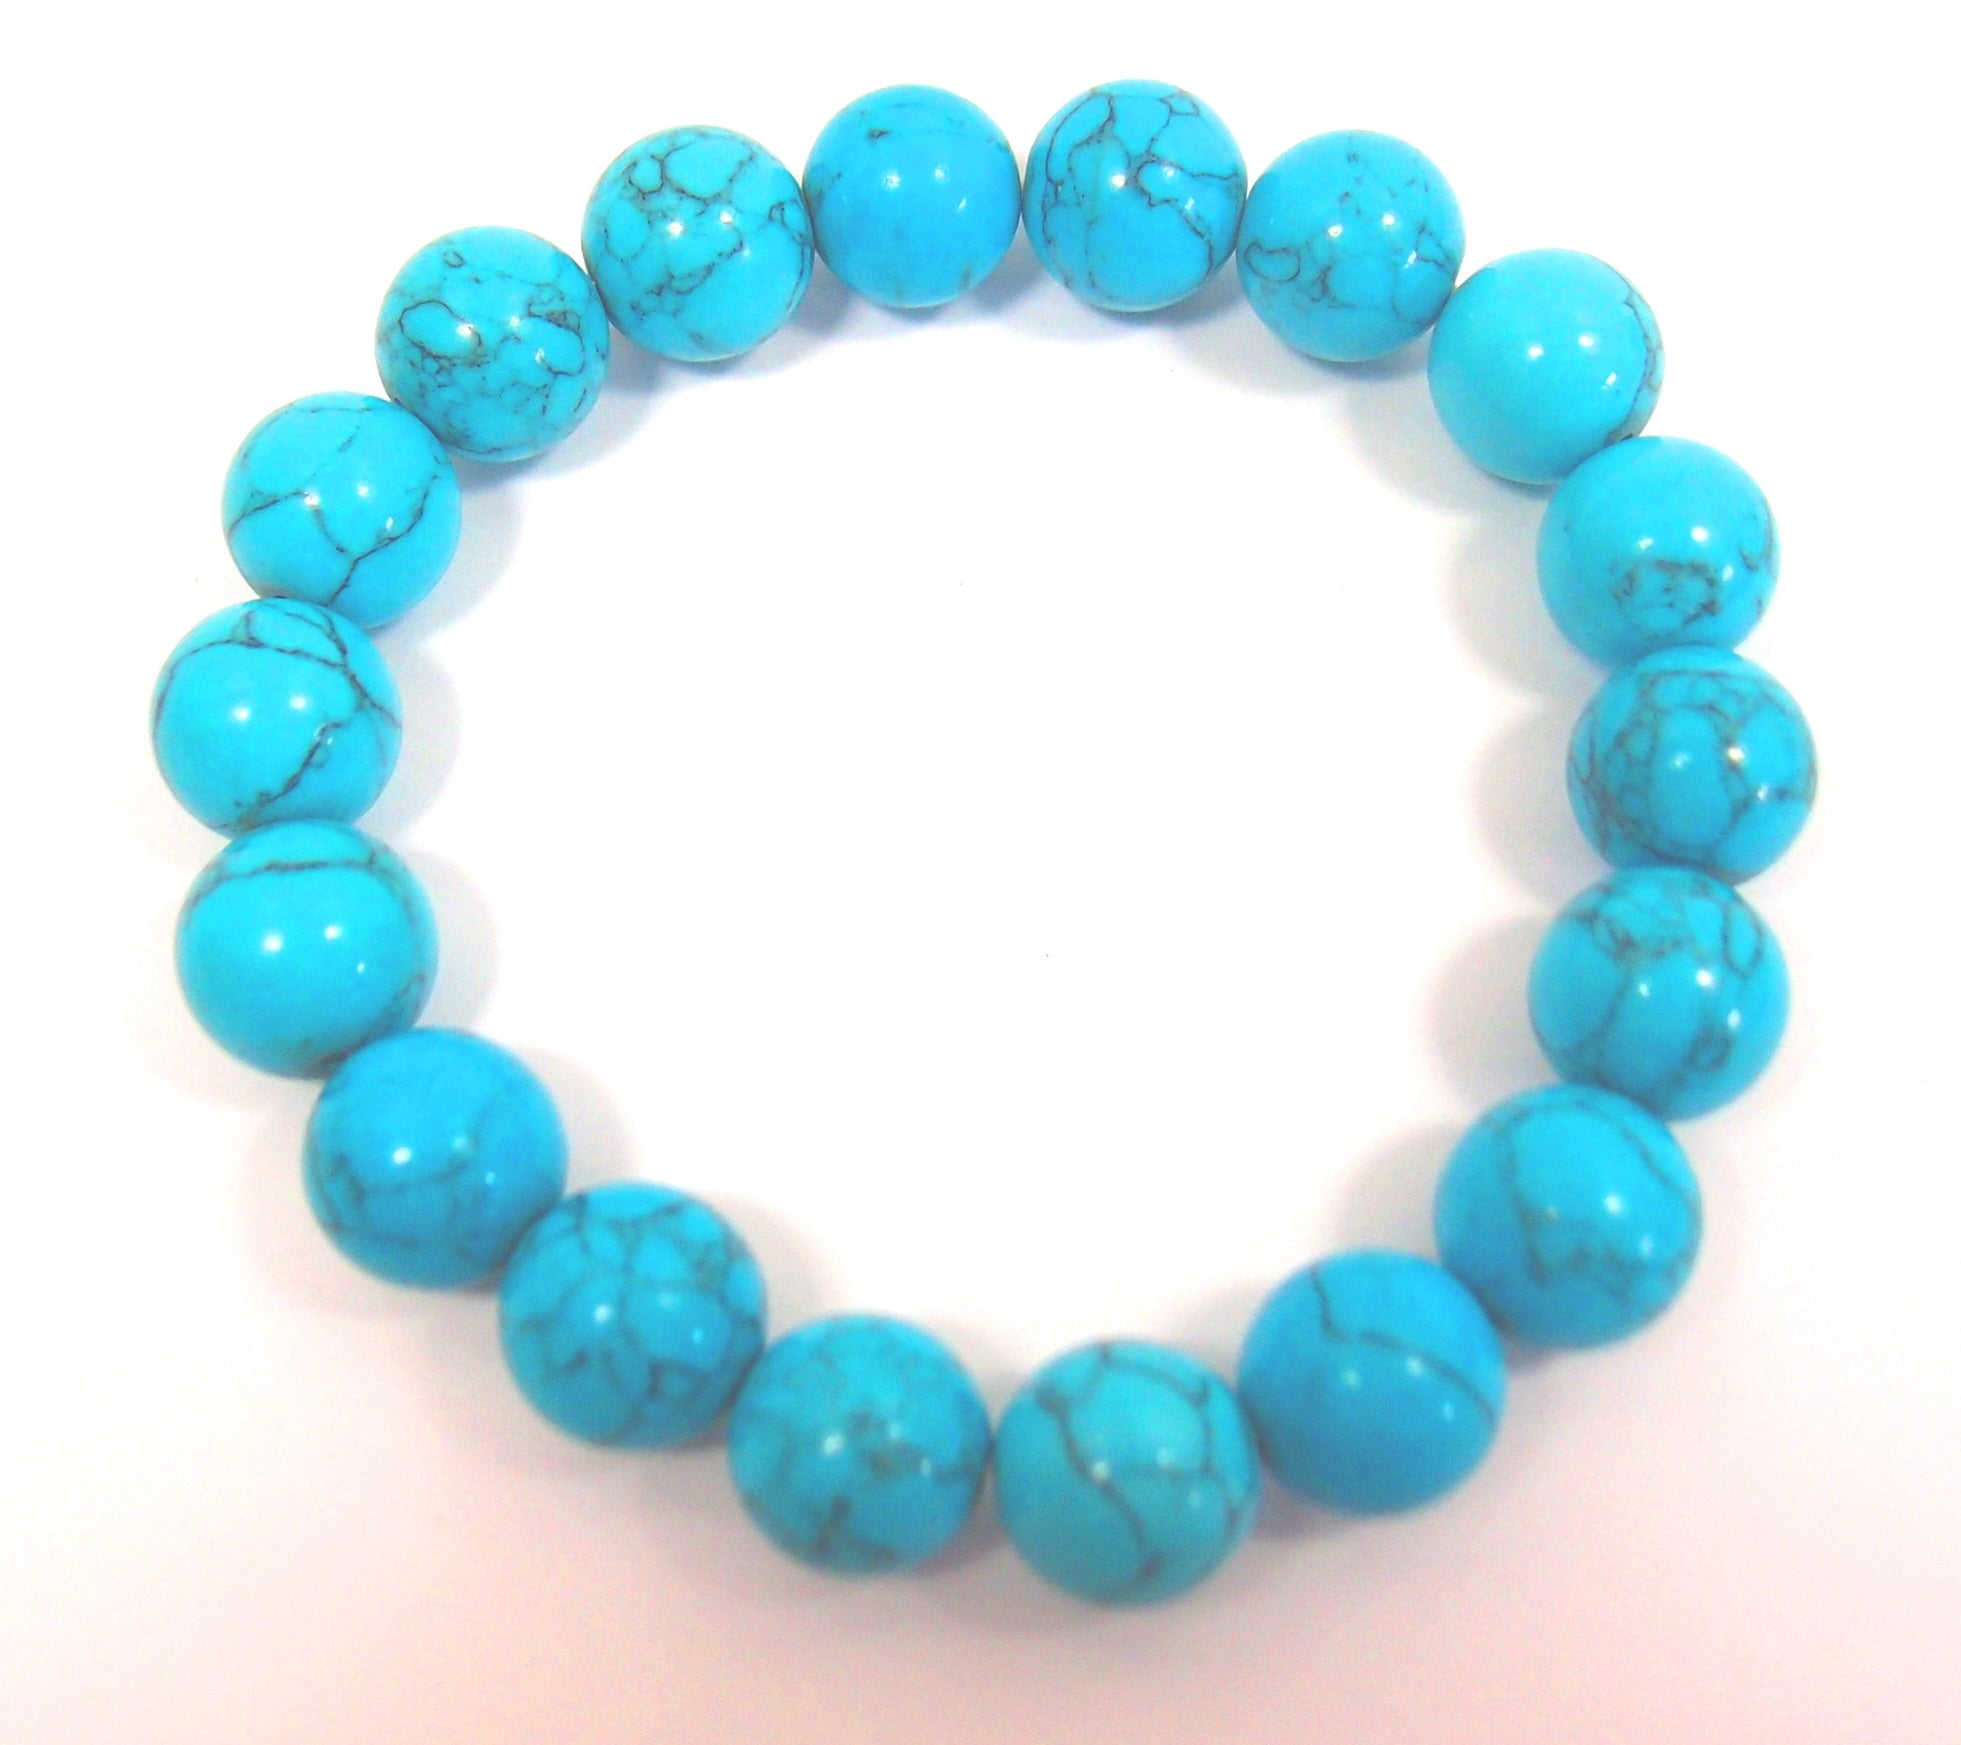 Turquoise Blue Bracelet (12mm beads): Pietra